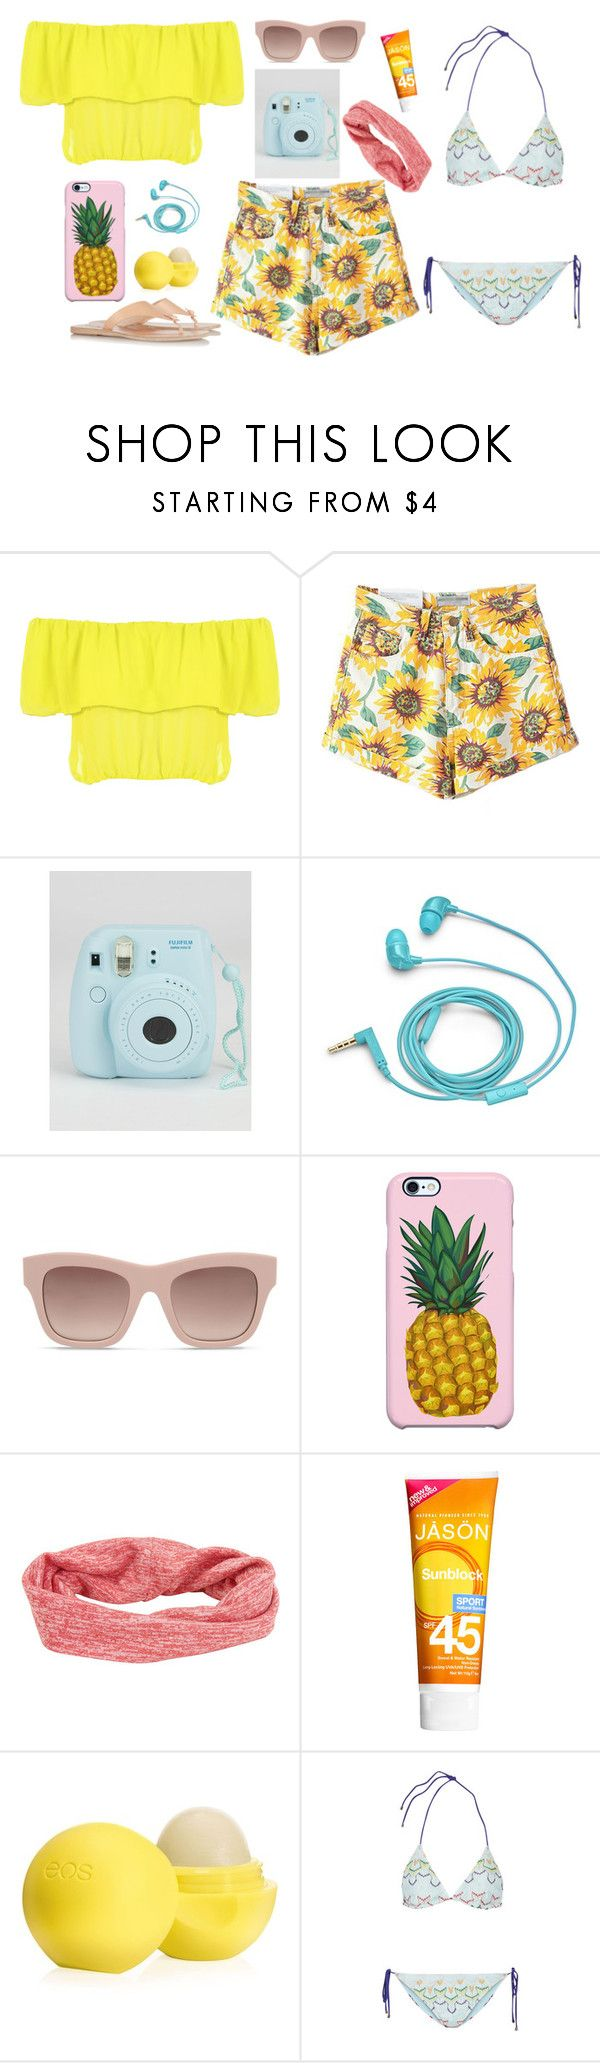 Sweet Summer by dinyvia on Polyvore featuring WearAll, Missoni, Ancient Greek Sandals, Uncommon, Aéropostale, STELLA McCARTNEY, FOSSIL, Eos, Jason and summerstyle